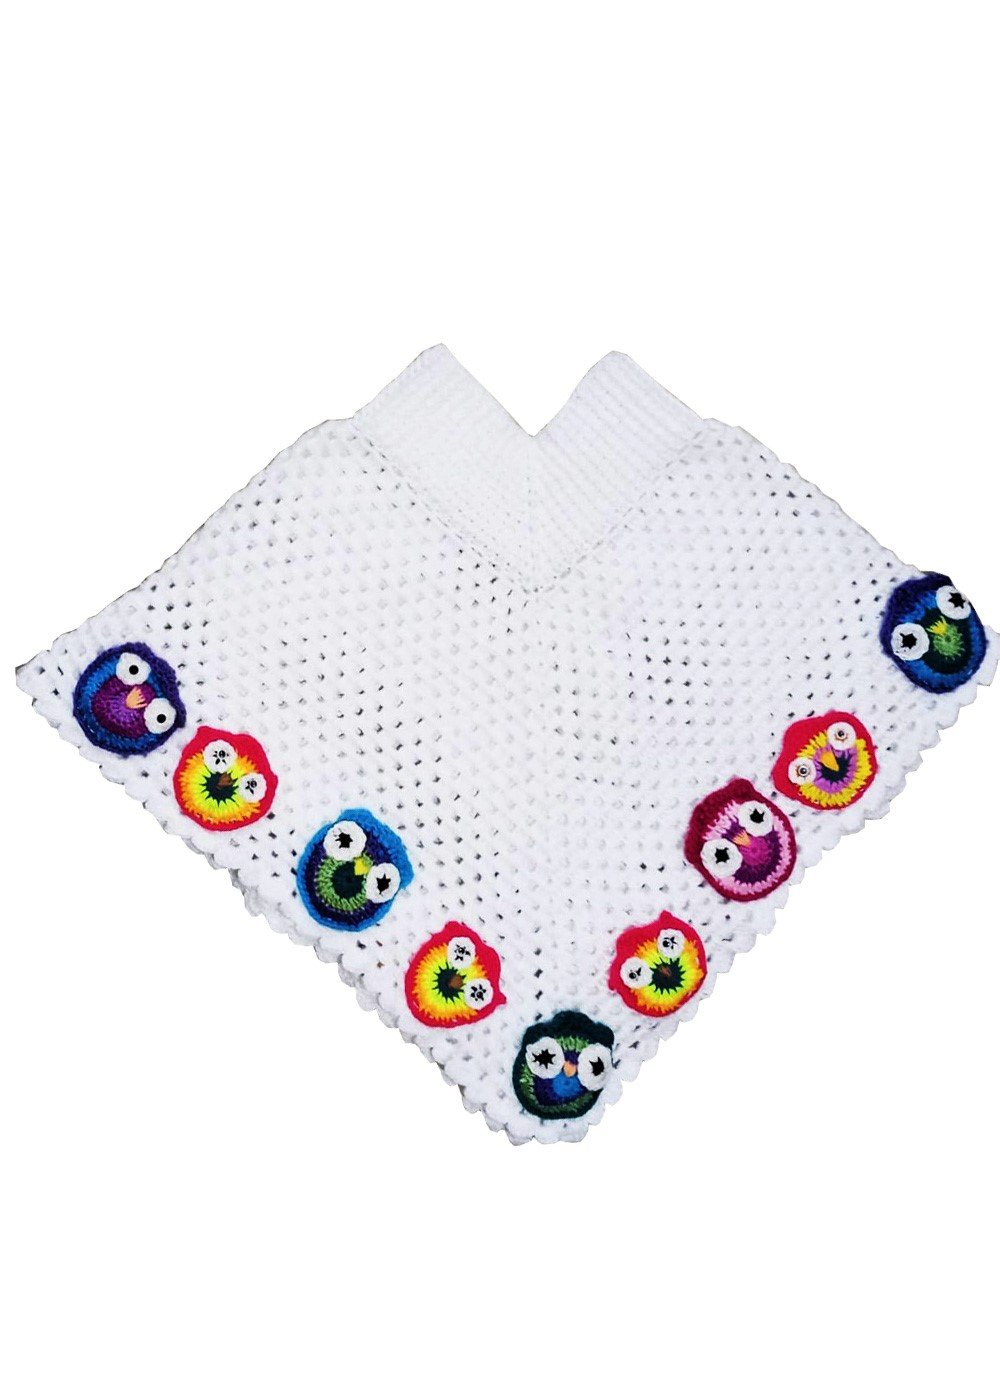 Hand crocheted Girls Poncho